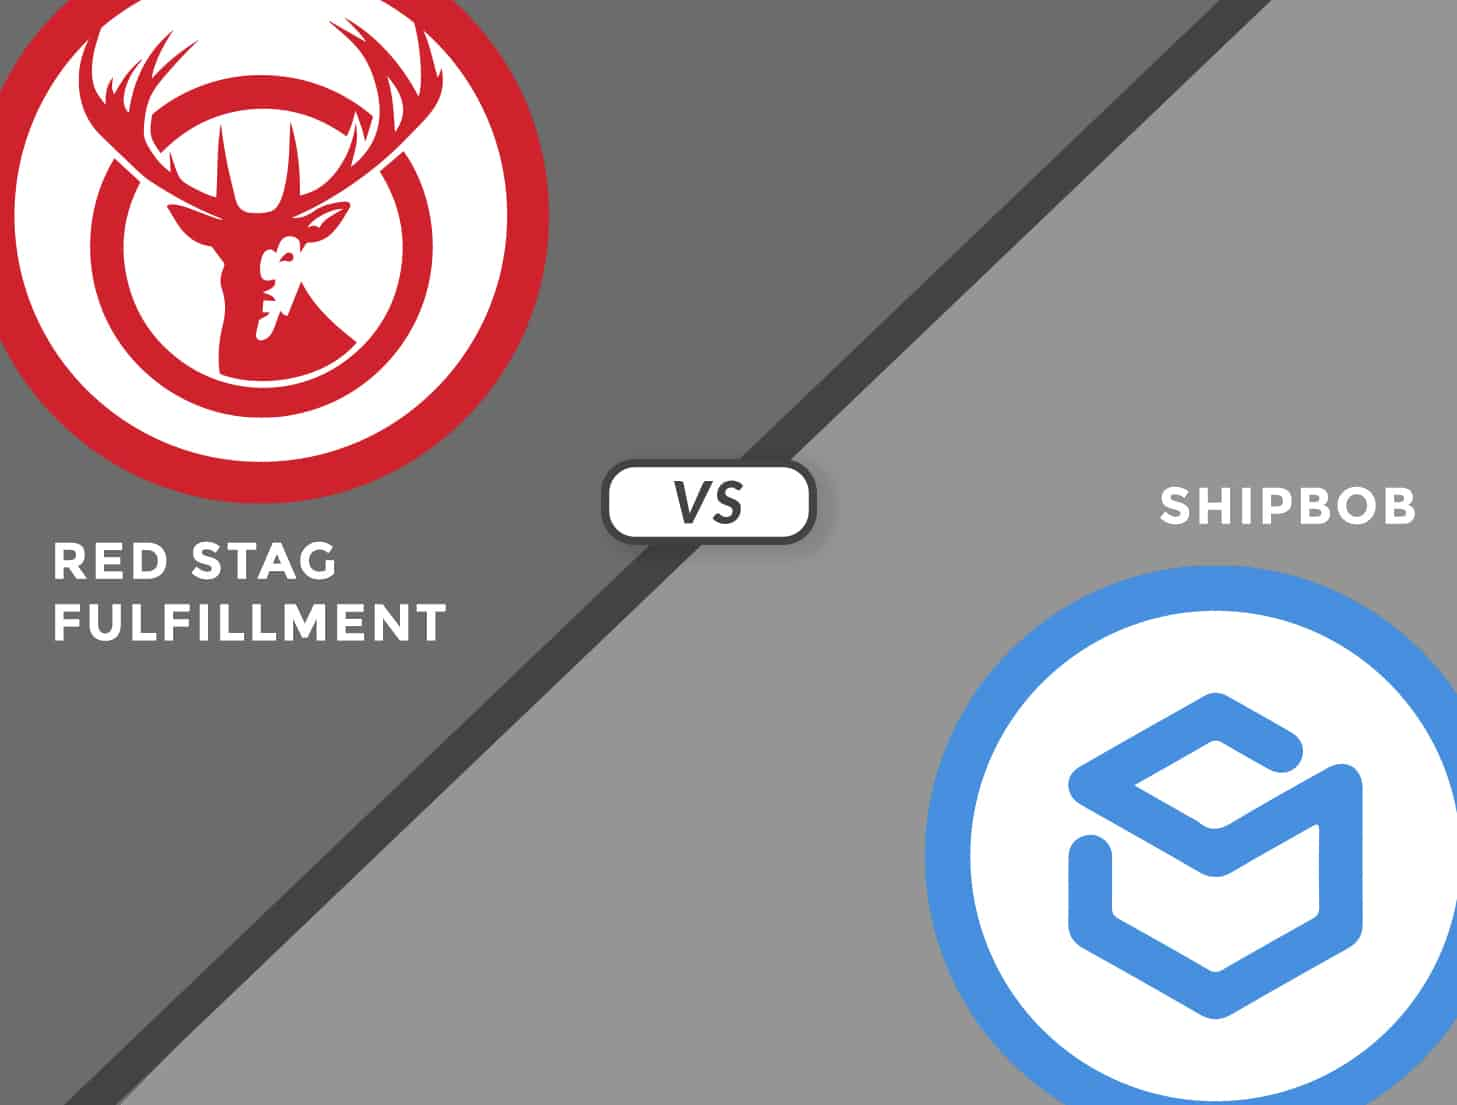 RED STAG FULFILLMENT VS SHIPBOB